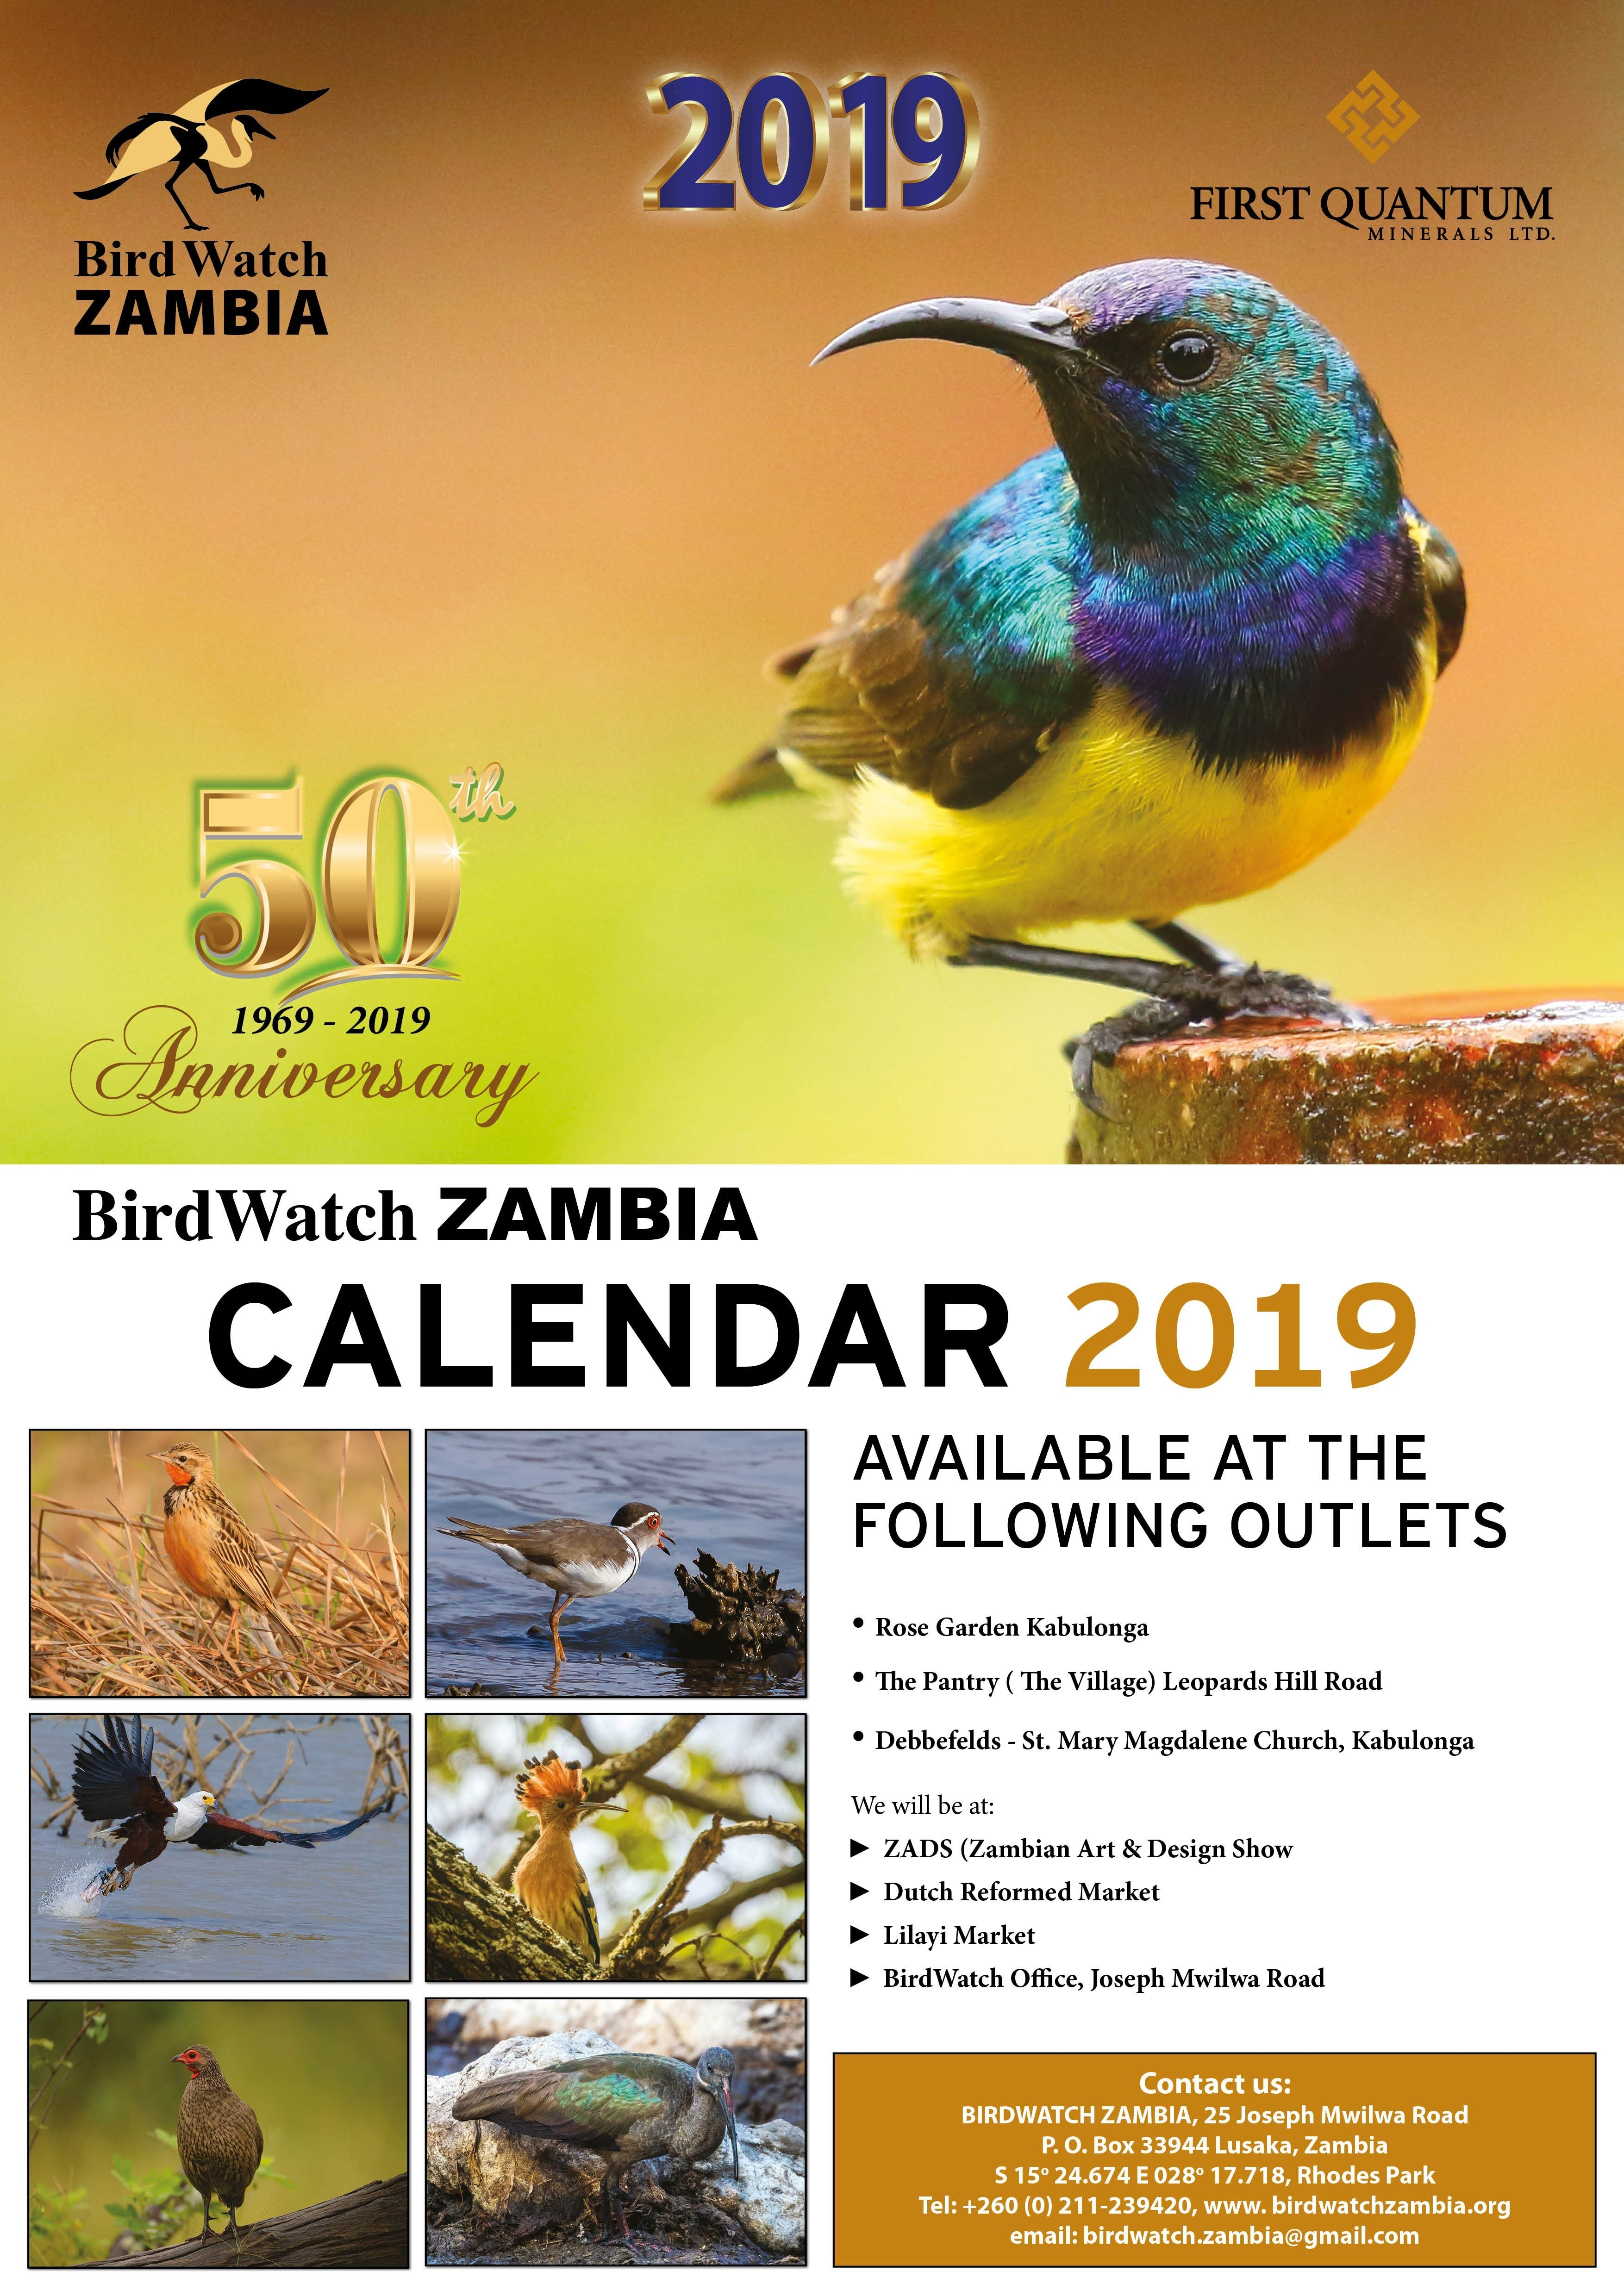 13.11.2018 – Birdwatch 2019 Calendar Now Available » Ad Dicts Ads Calendar 2019 Zambia